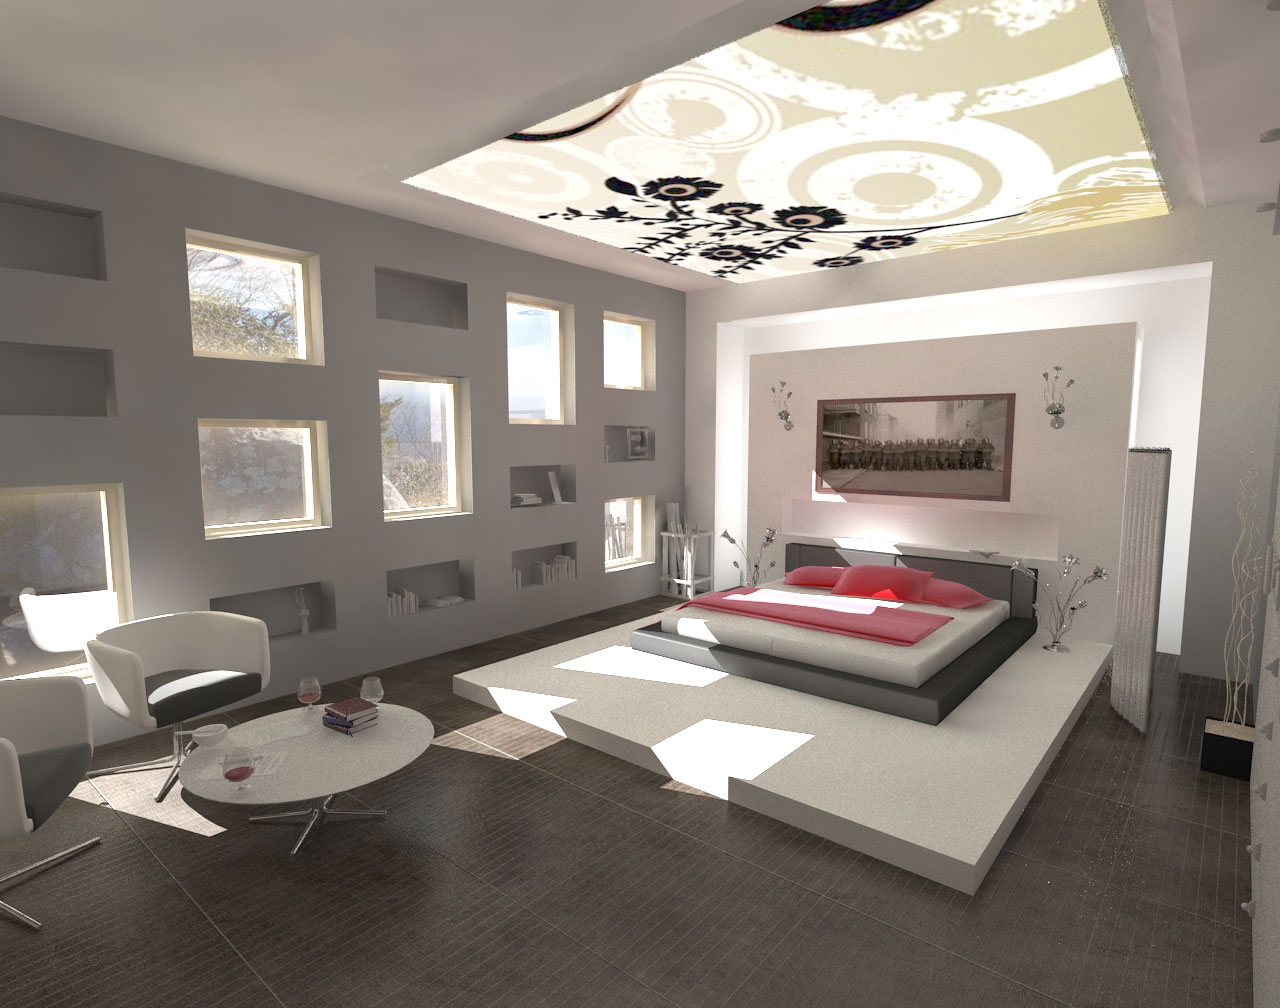 Exclusive interior bedroom ideas home design ideas and for Exclusive interior designs